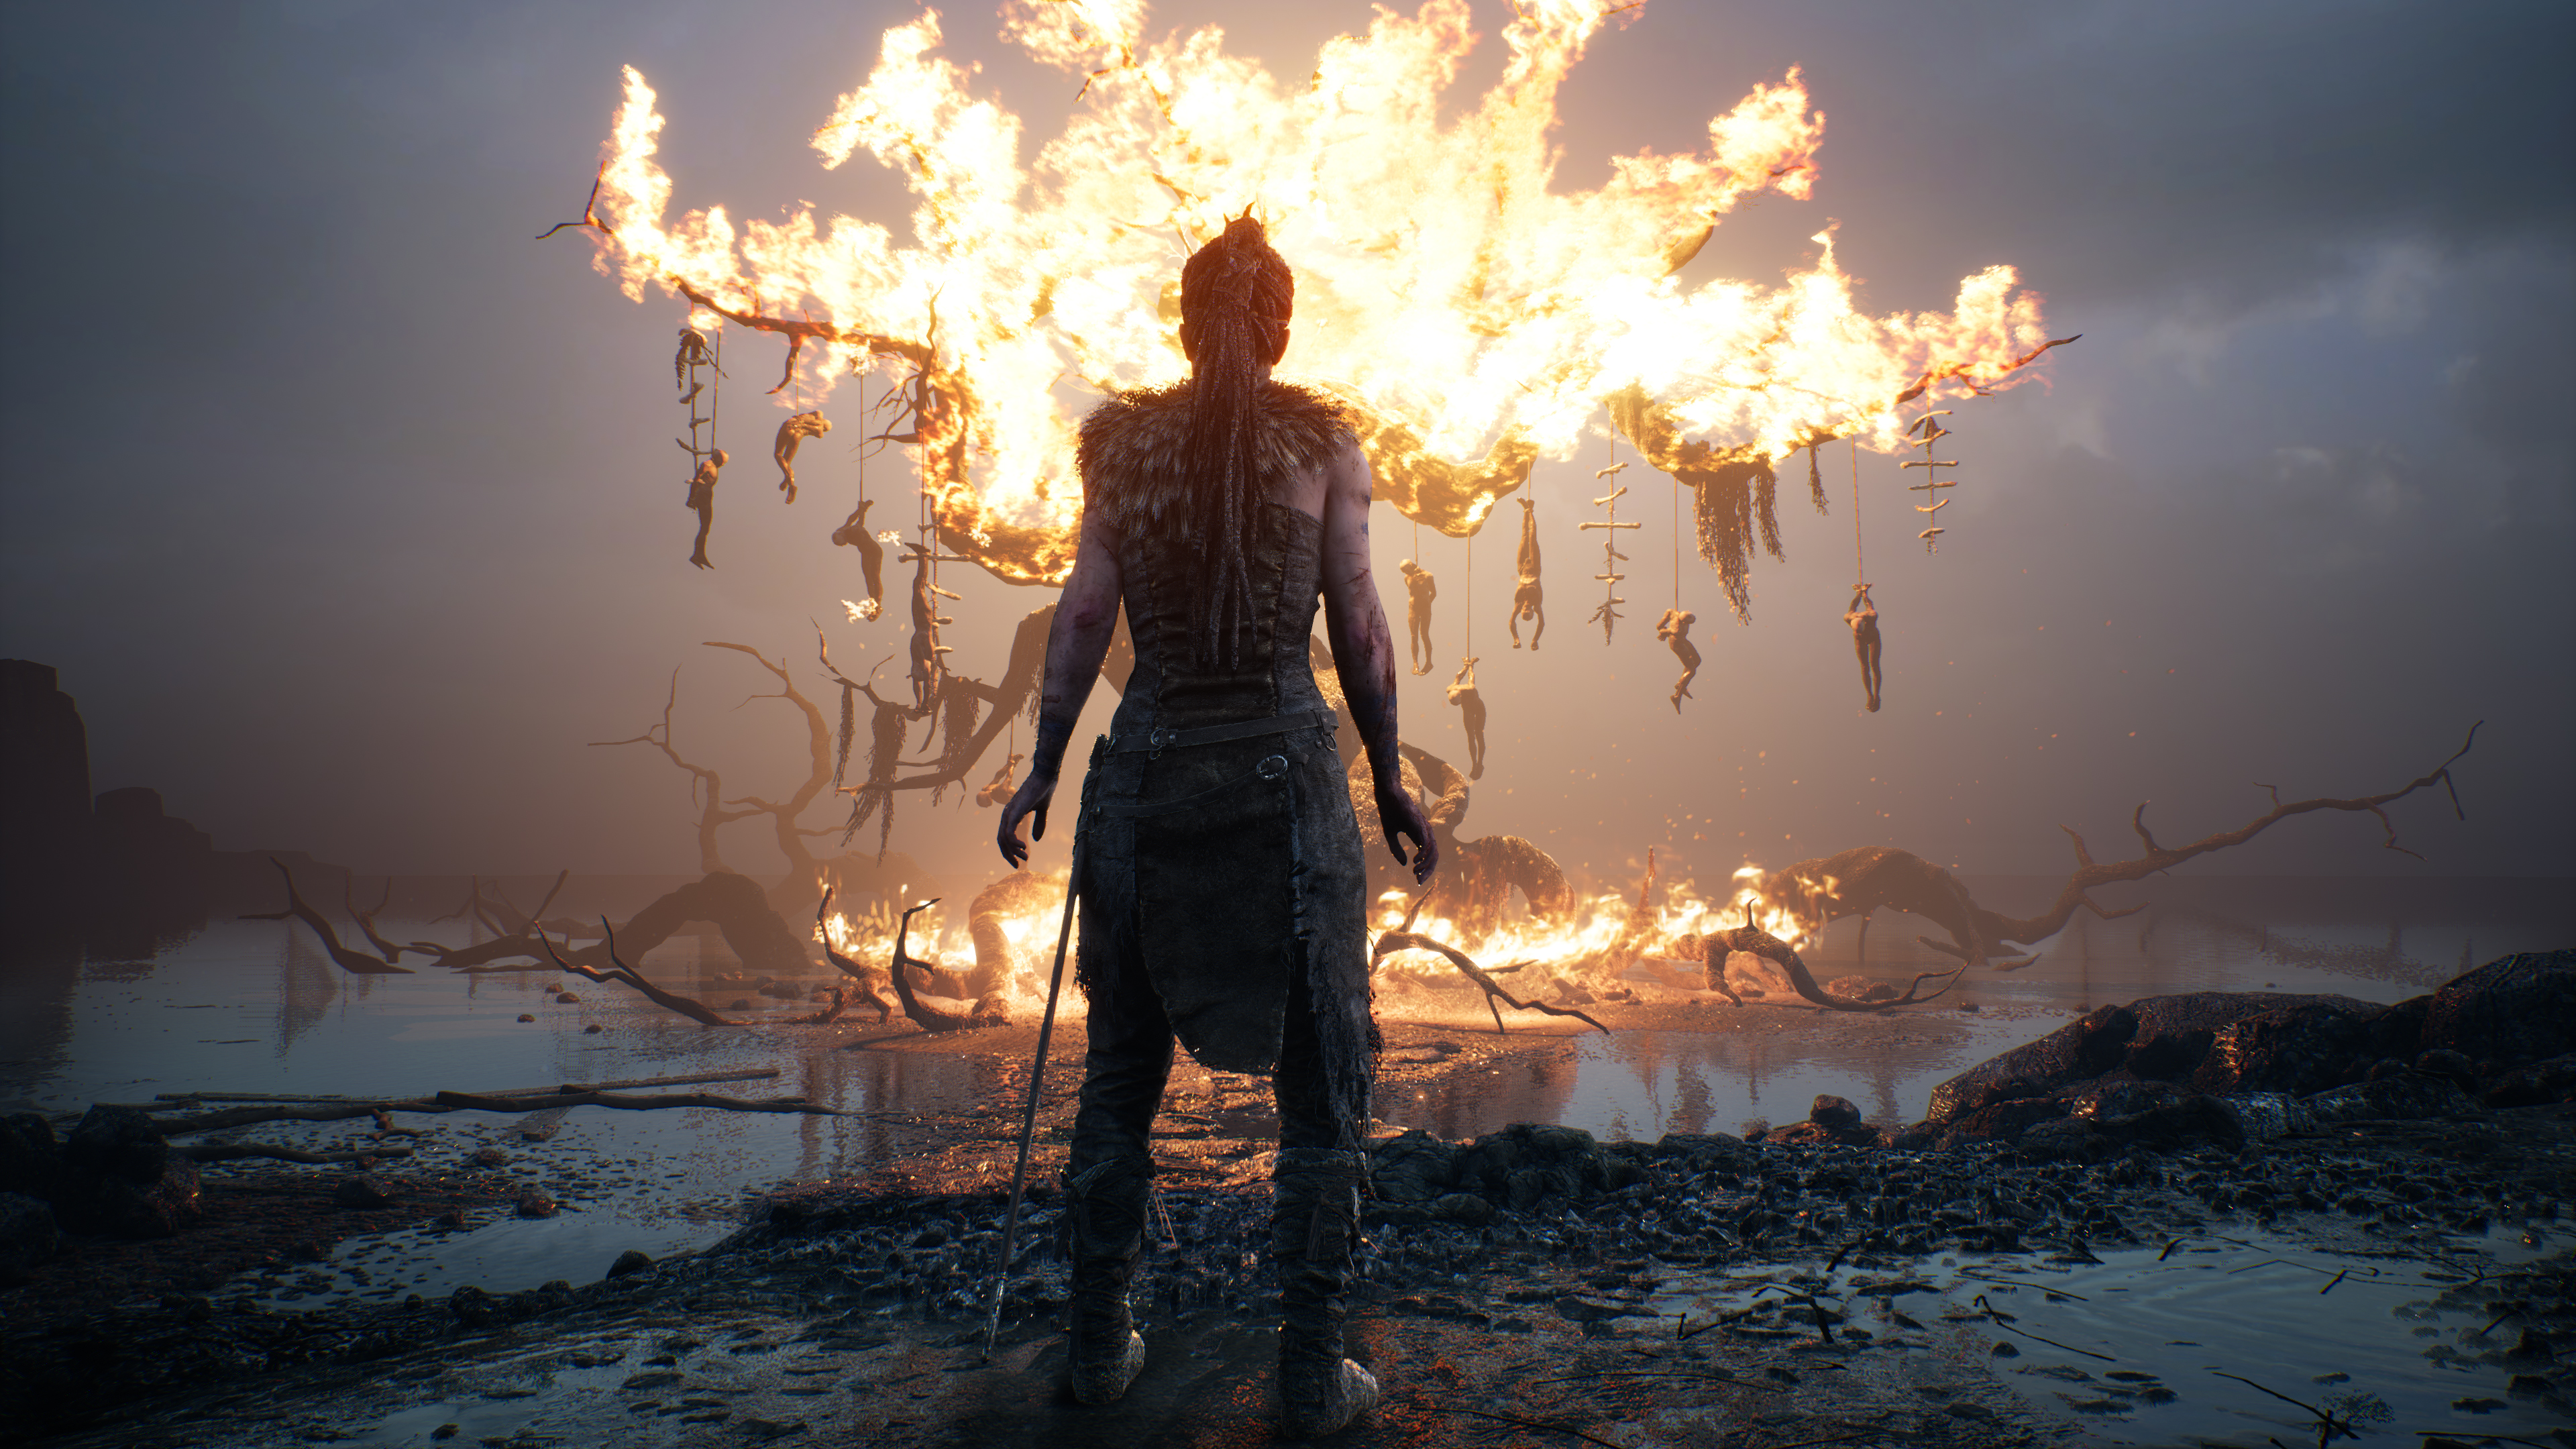 Senua in front of a burning tree with hanged people